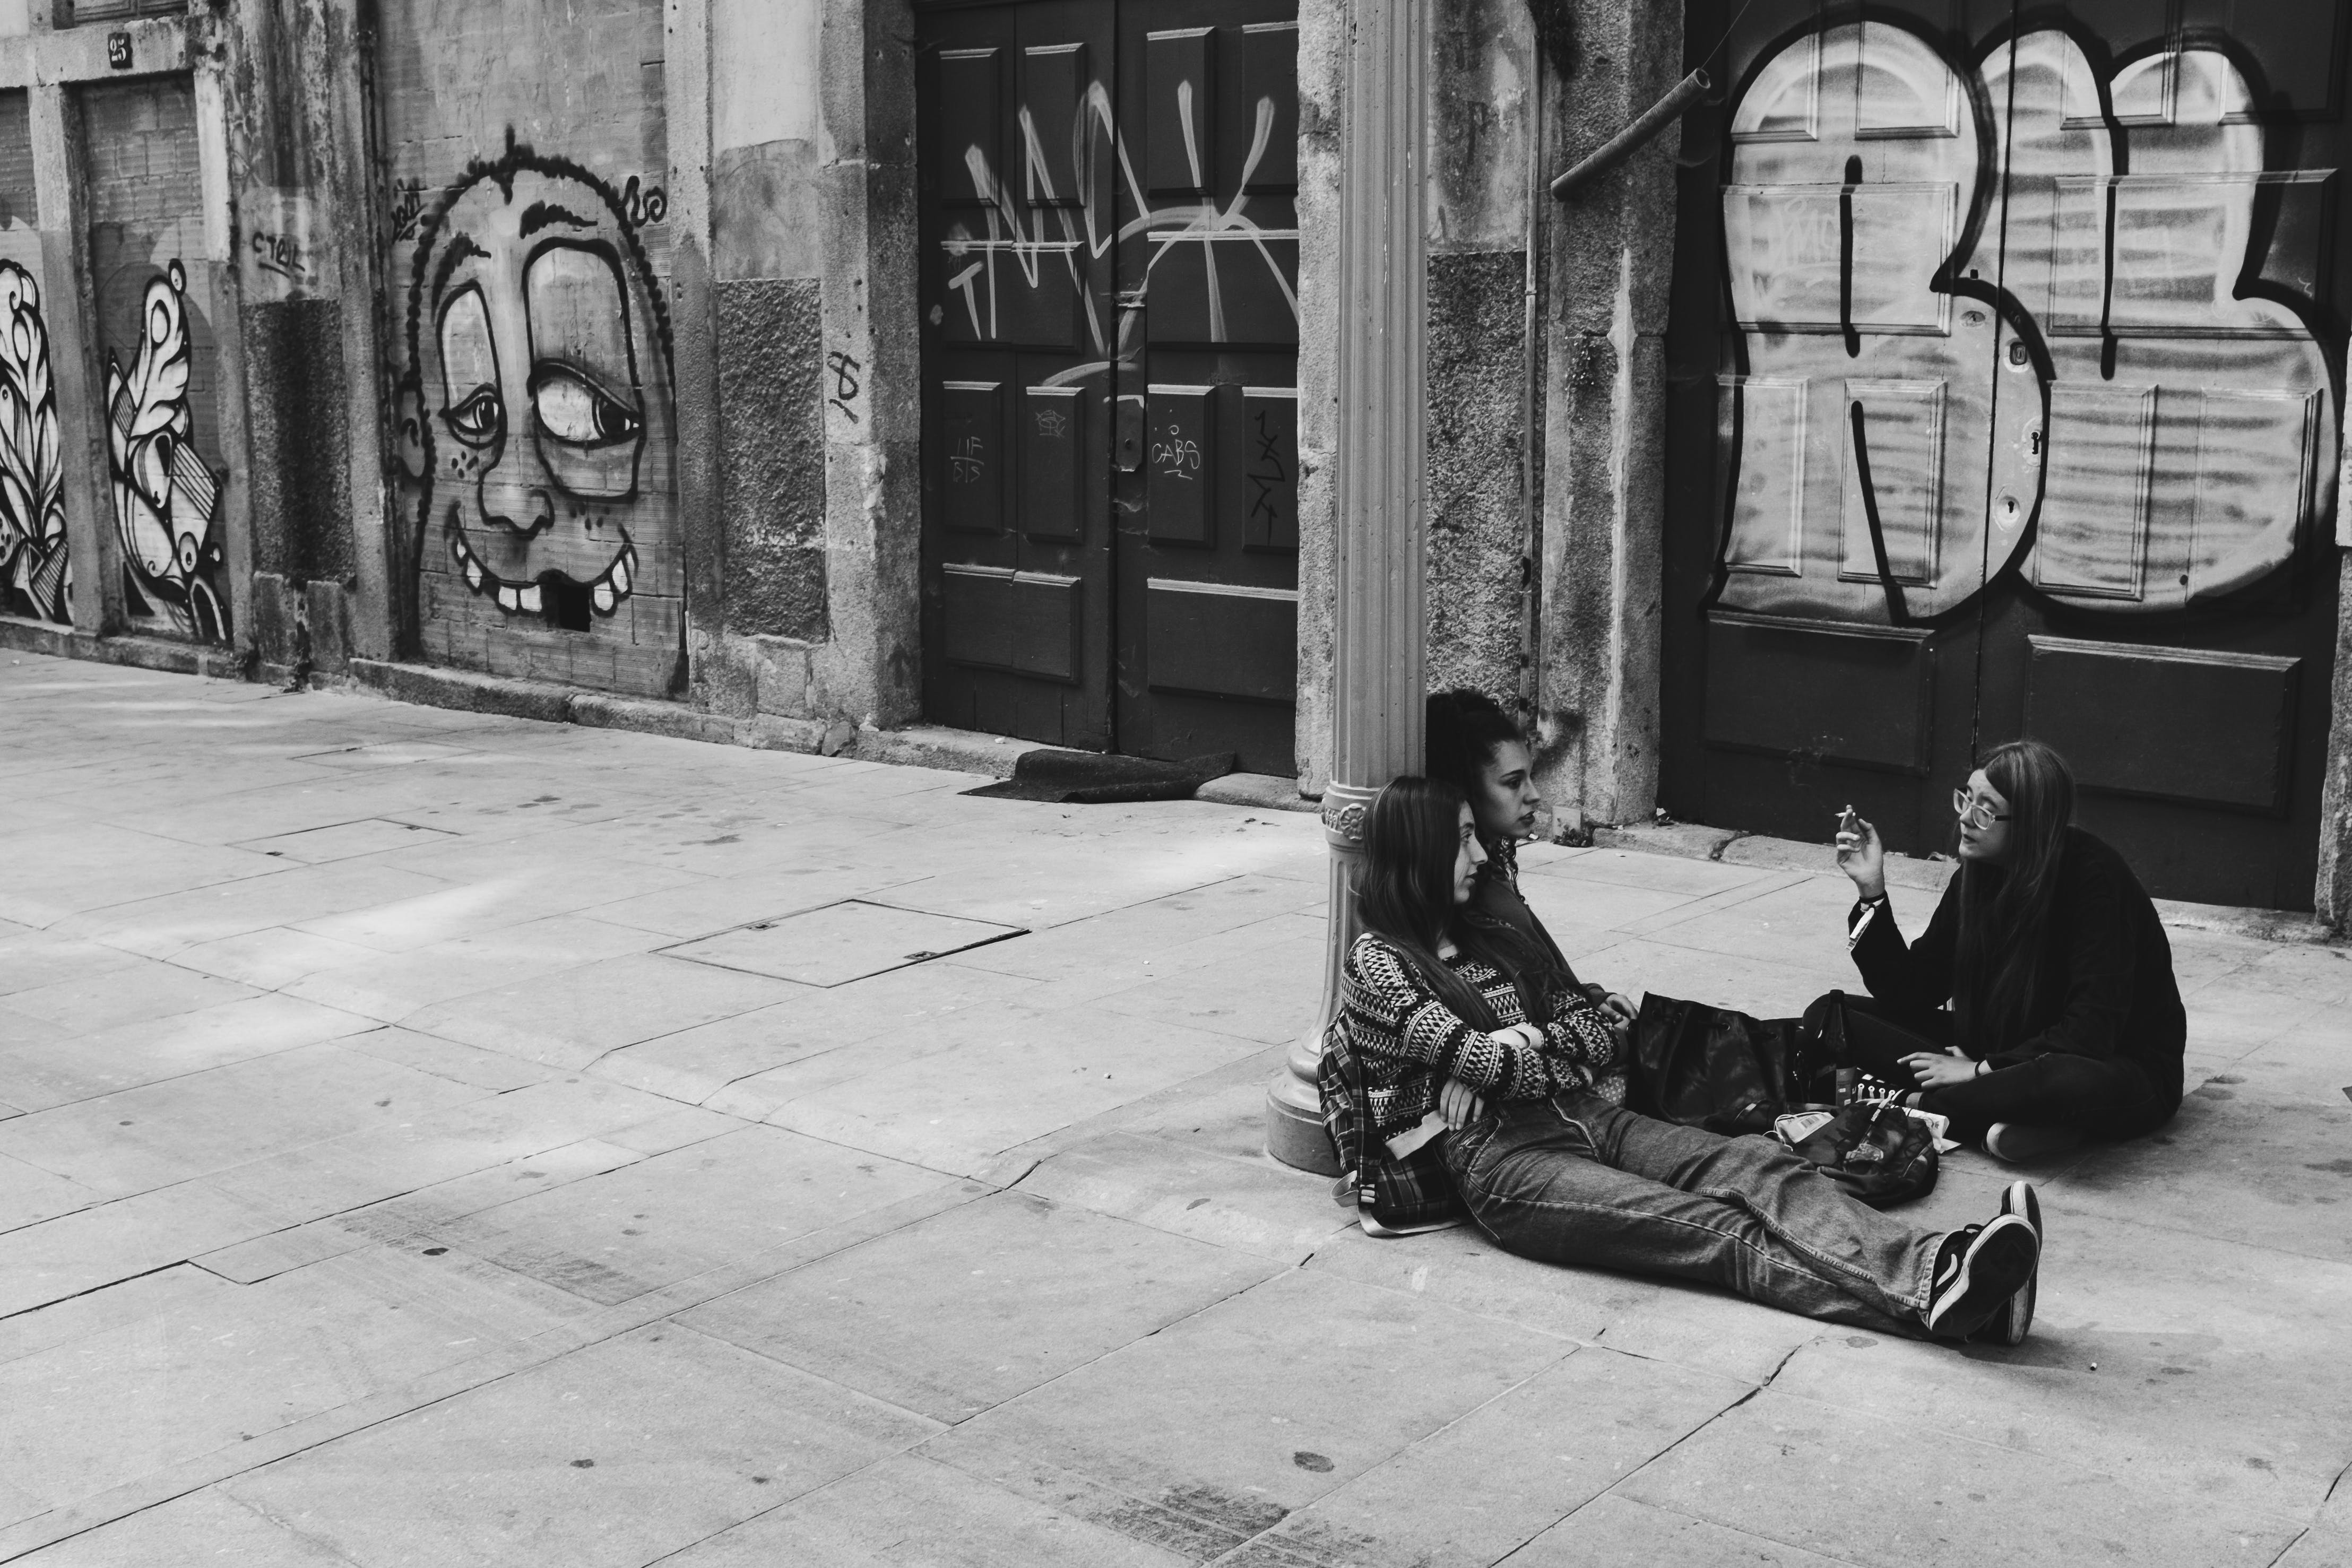 Grayscale Photography Of People Sitting On Concrete Pavement